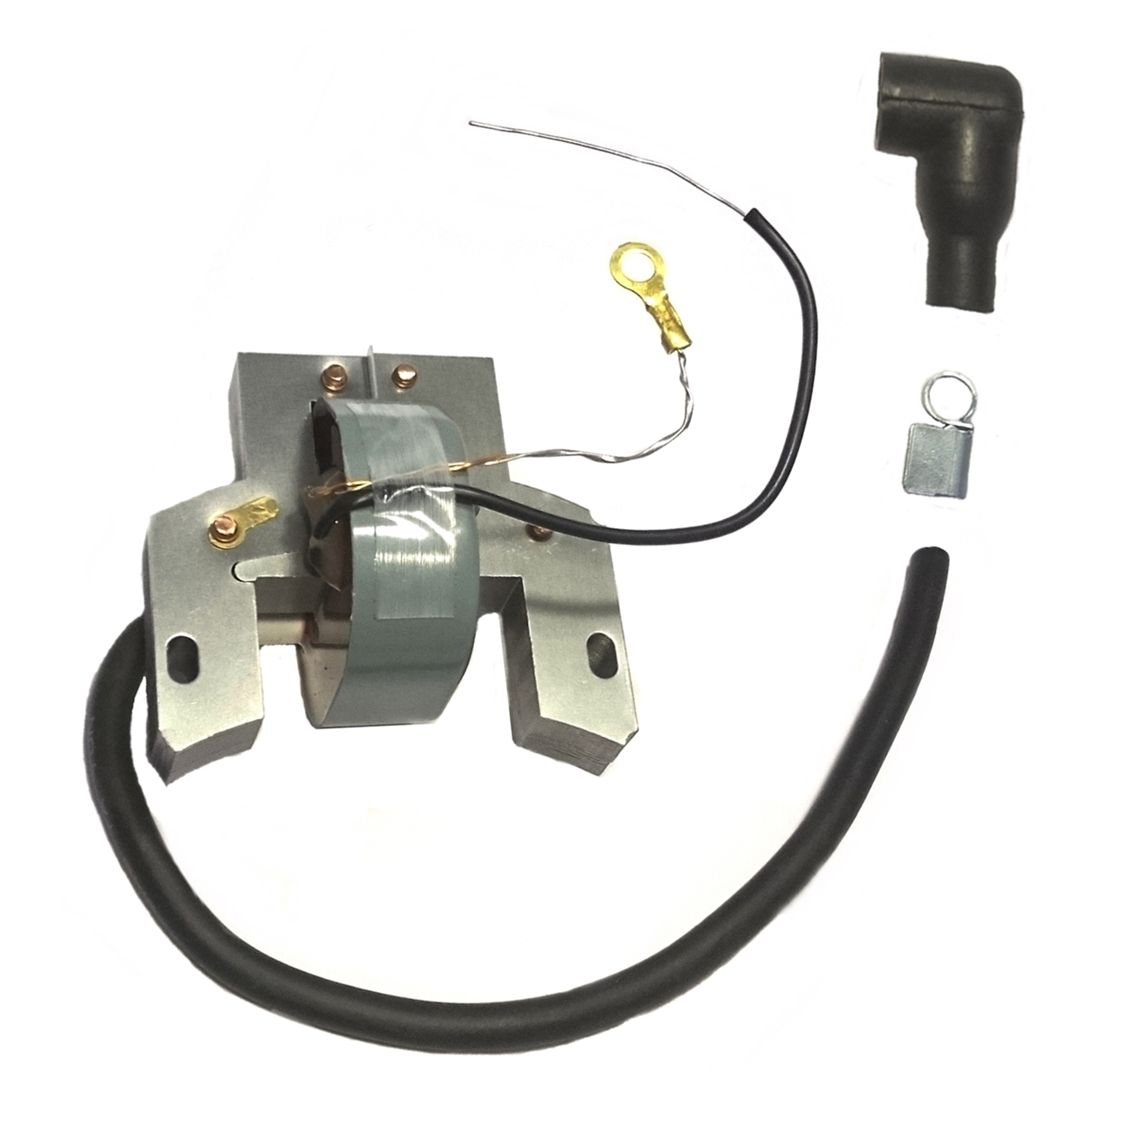 hight resolution of ignition coil armature magneto briggs stratton 298502 briggs and stratton ignition system diagram 14 5 briggs and